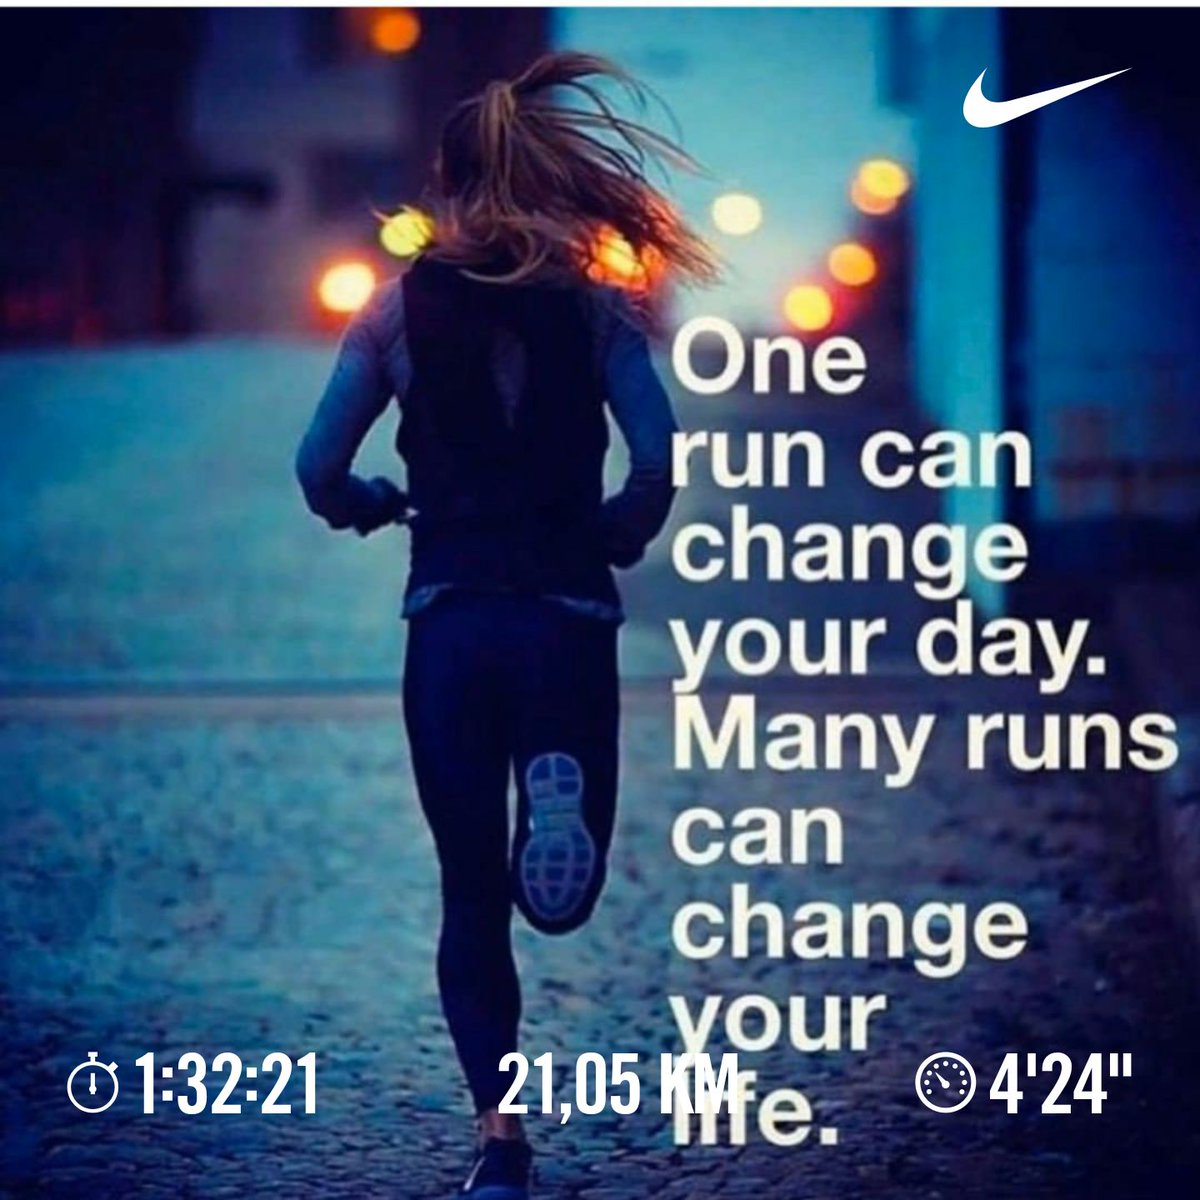 Saturday run completed. It's been a while I last did half marathon. Im slowly getting back to my full fitness #RunningWithTumiSole #fitnessjourney #FetchYourBody2020pic.twitter.com/crTqrgC7jP